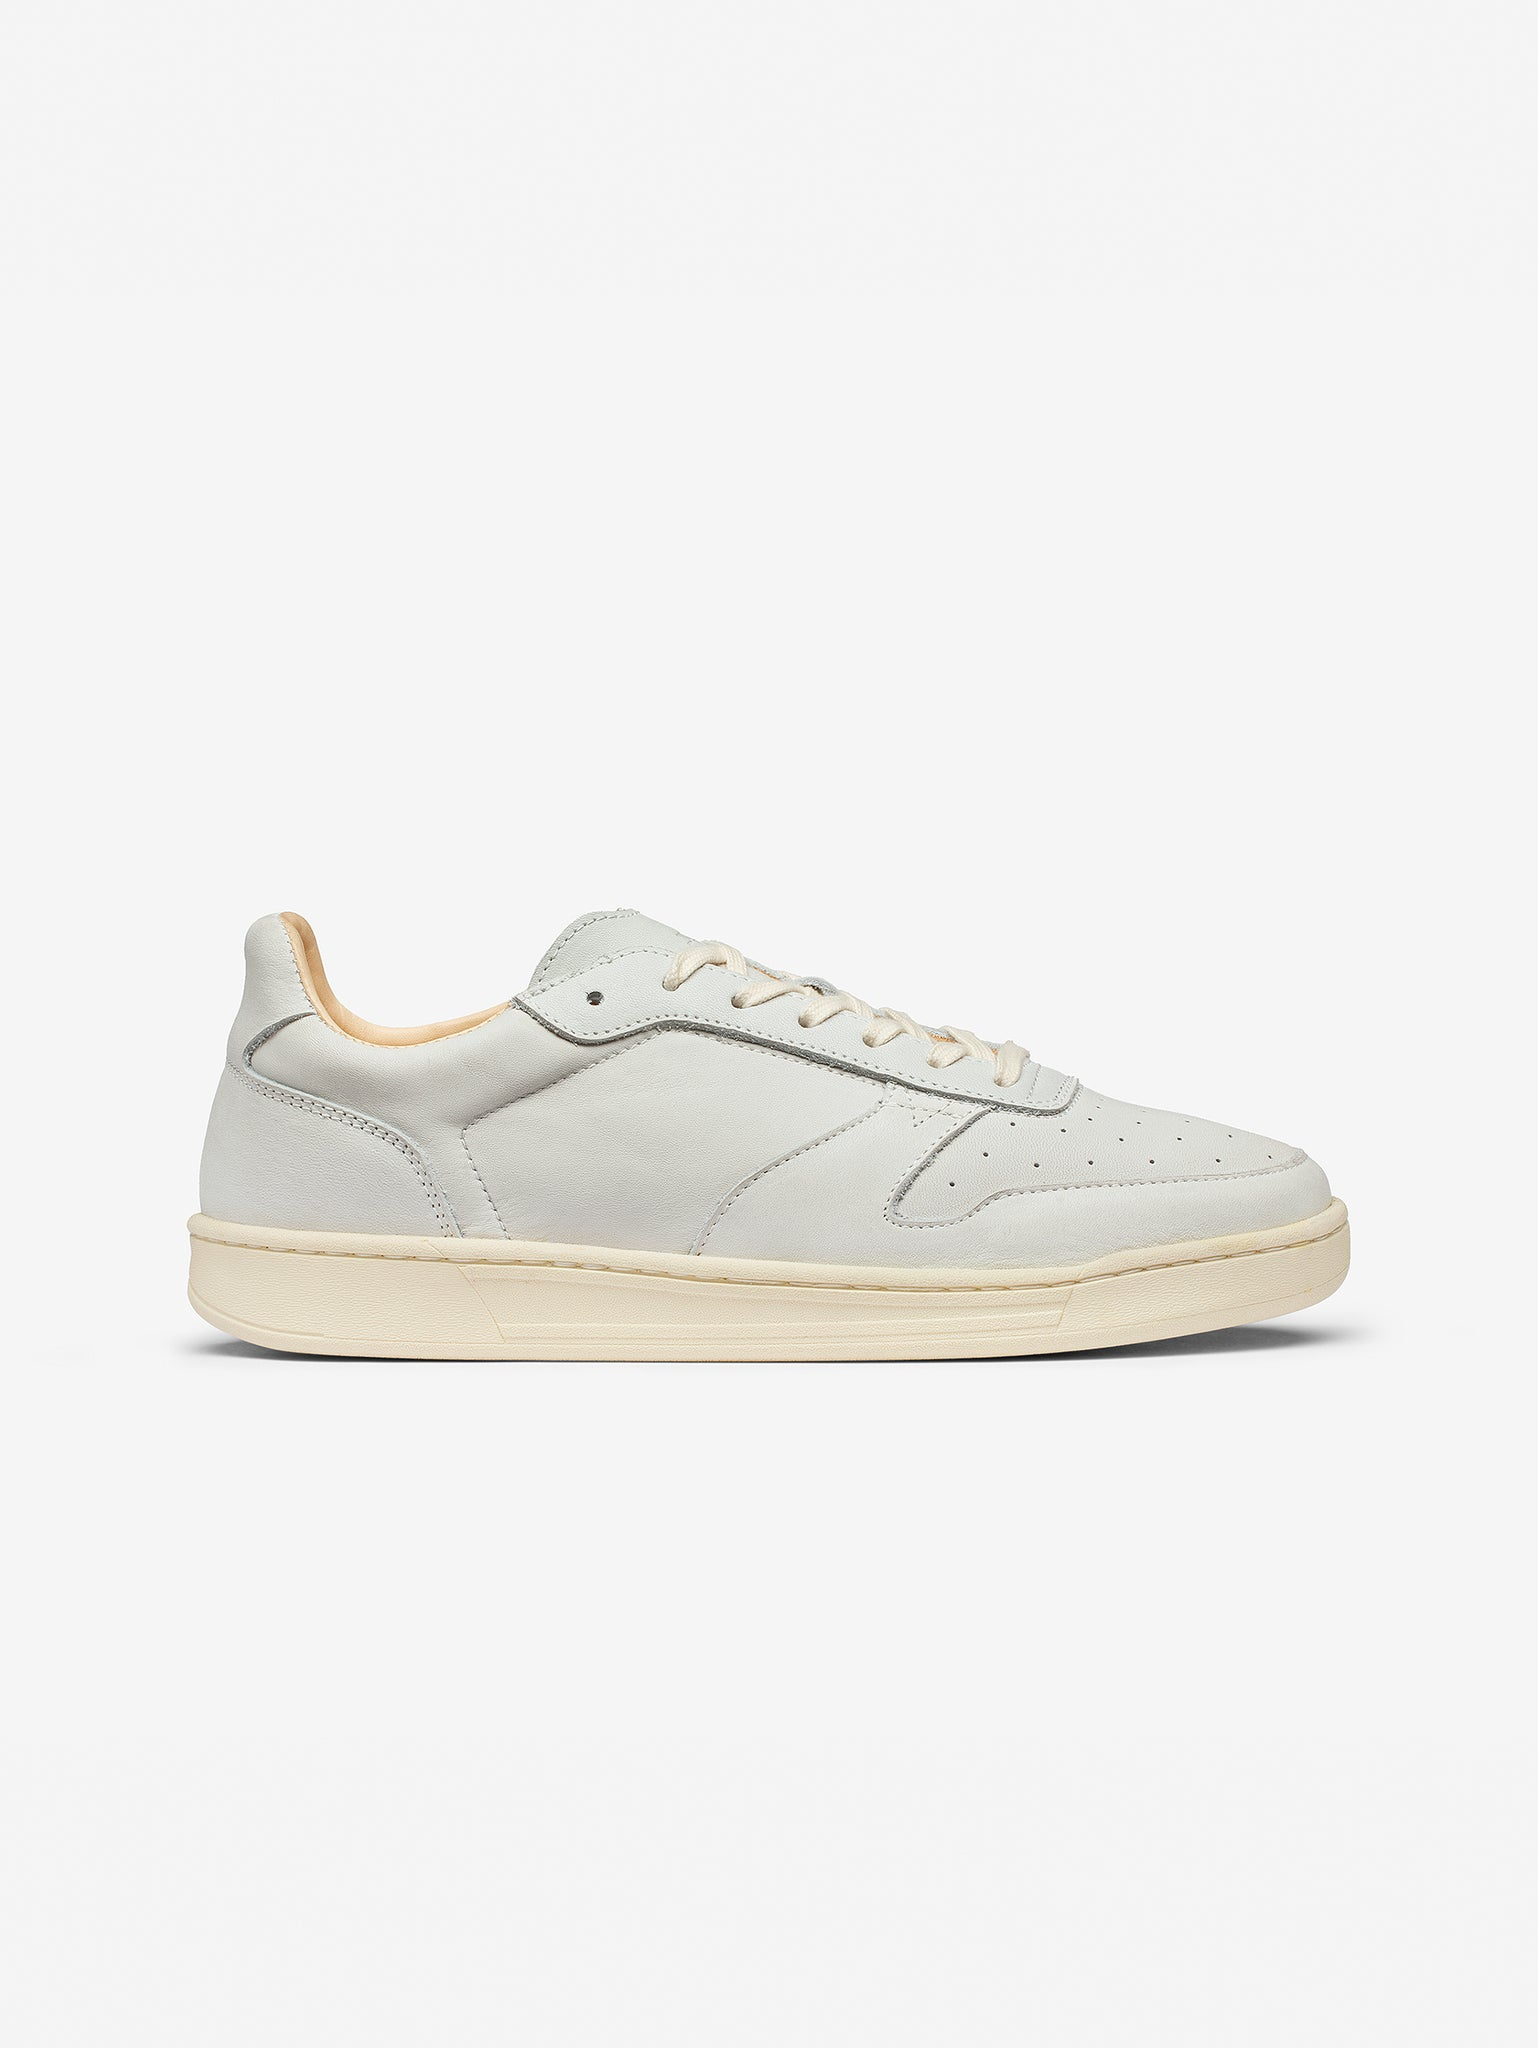 1981 - White Leather Trainer